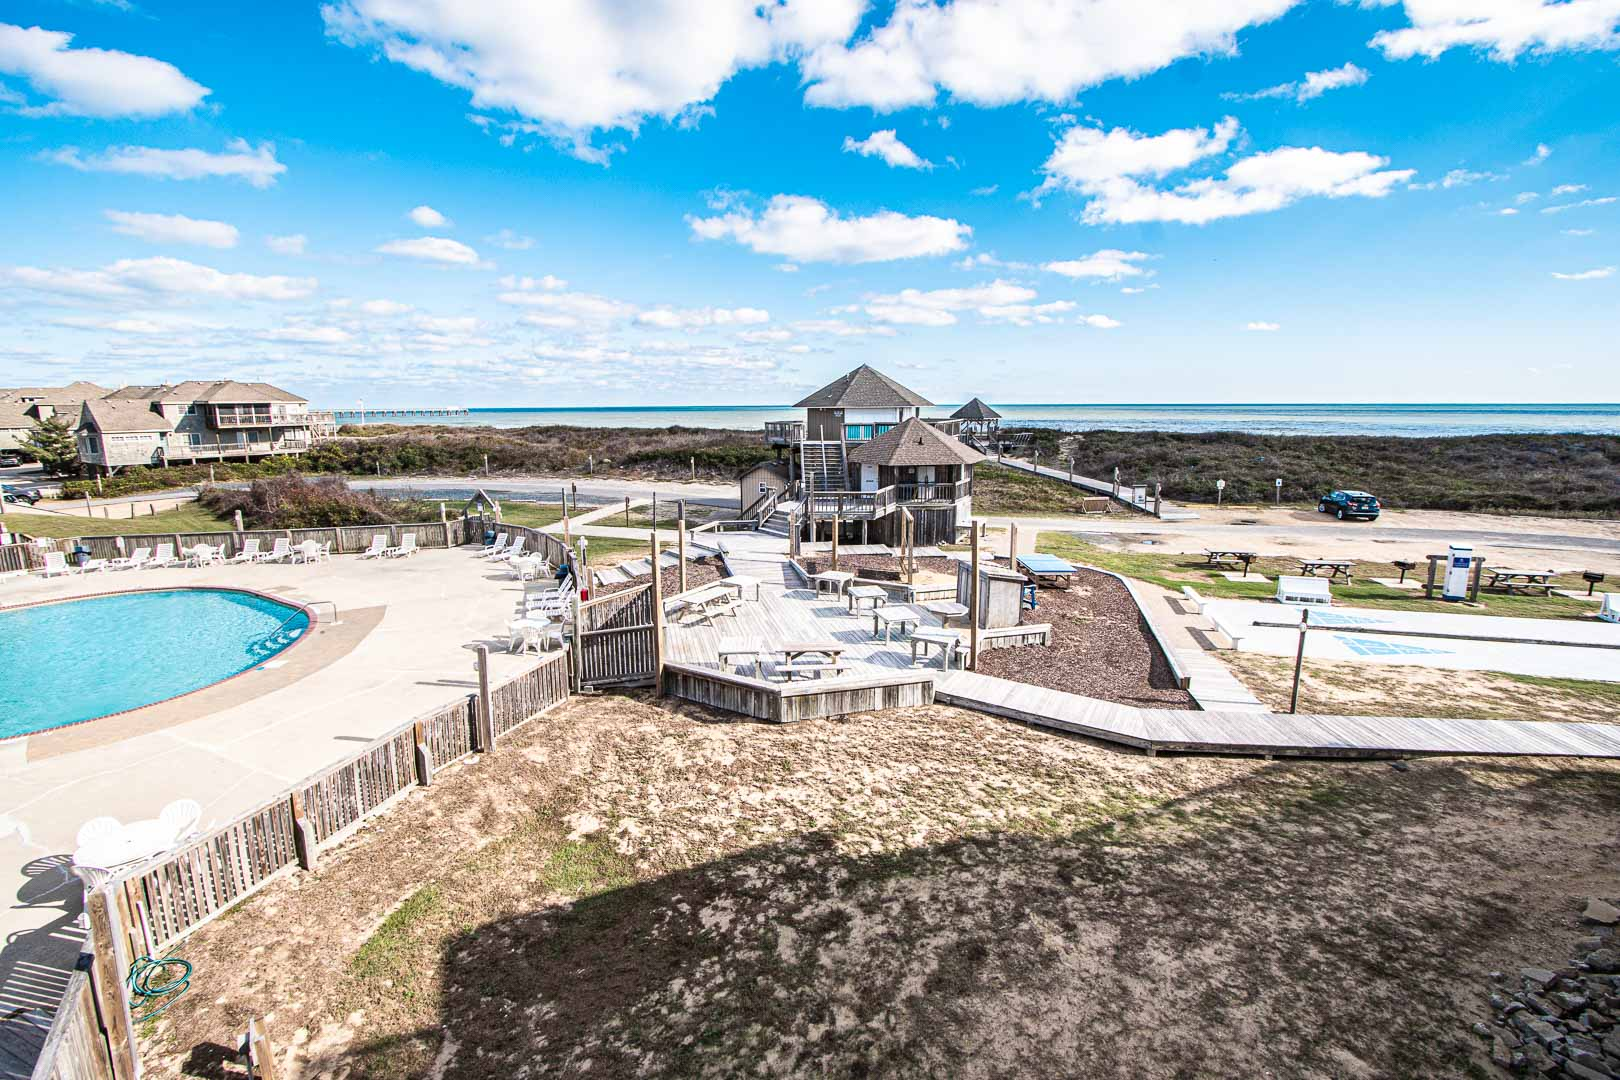 The beautiful view at VRI's Barrier Island Station in North Carolina.